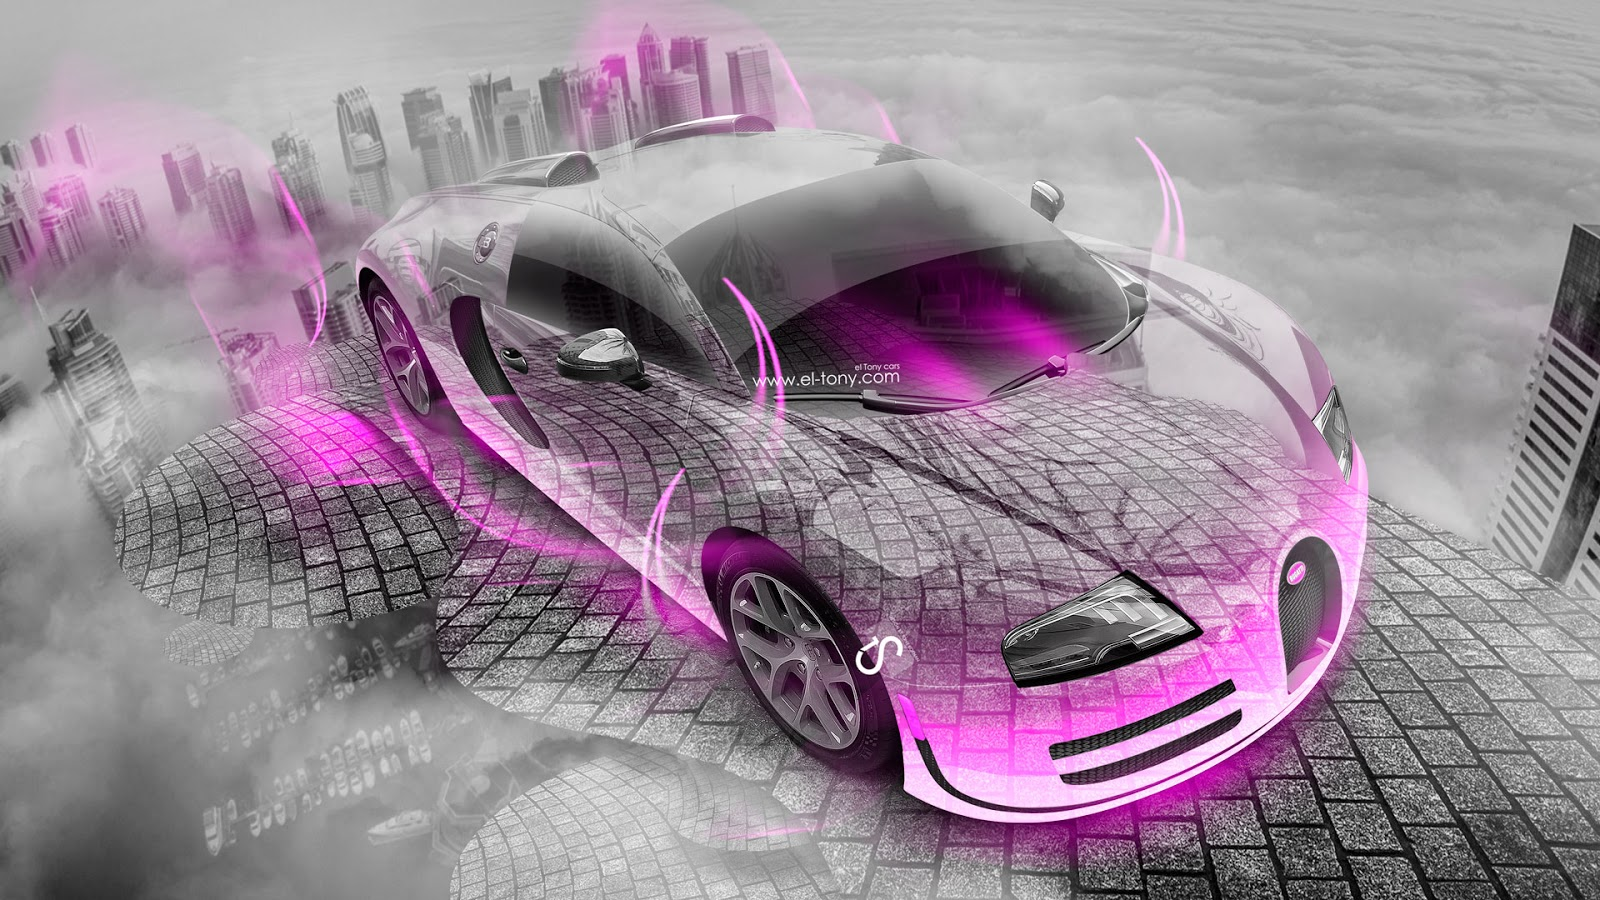 Gentil Bugatti Verona Green Neon Tiger Fantasy Plastic Car 2017 Hd  Wallpaper Pink Bugatti Verona Wallpaper